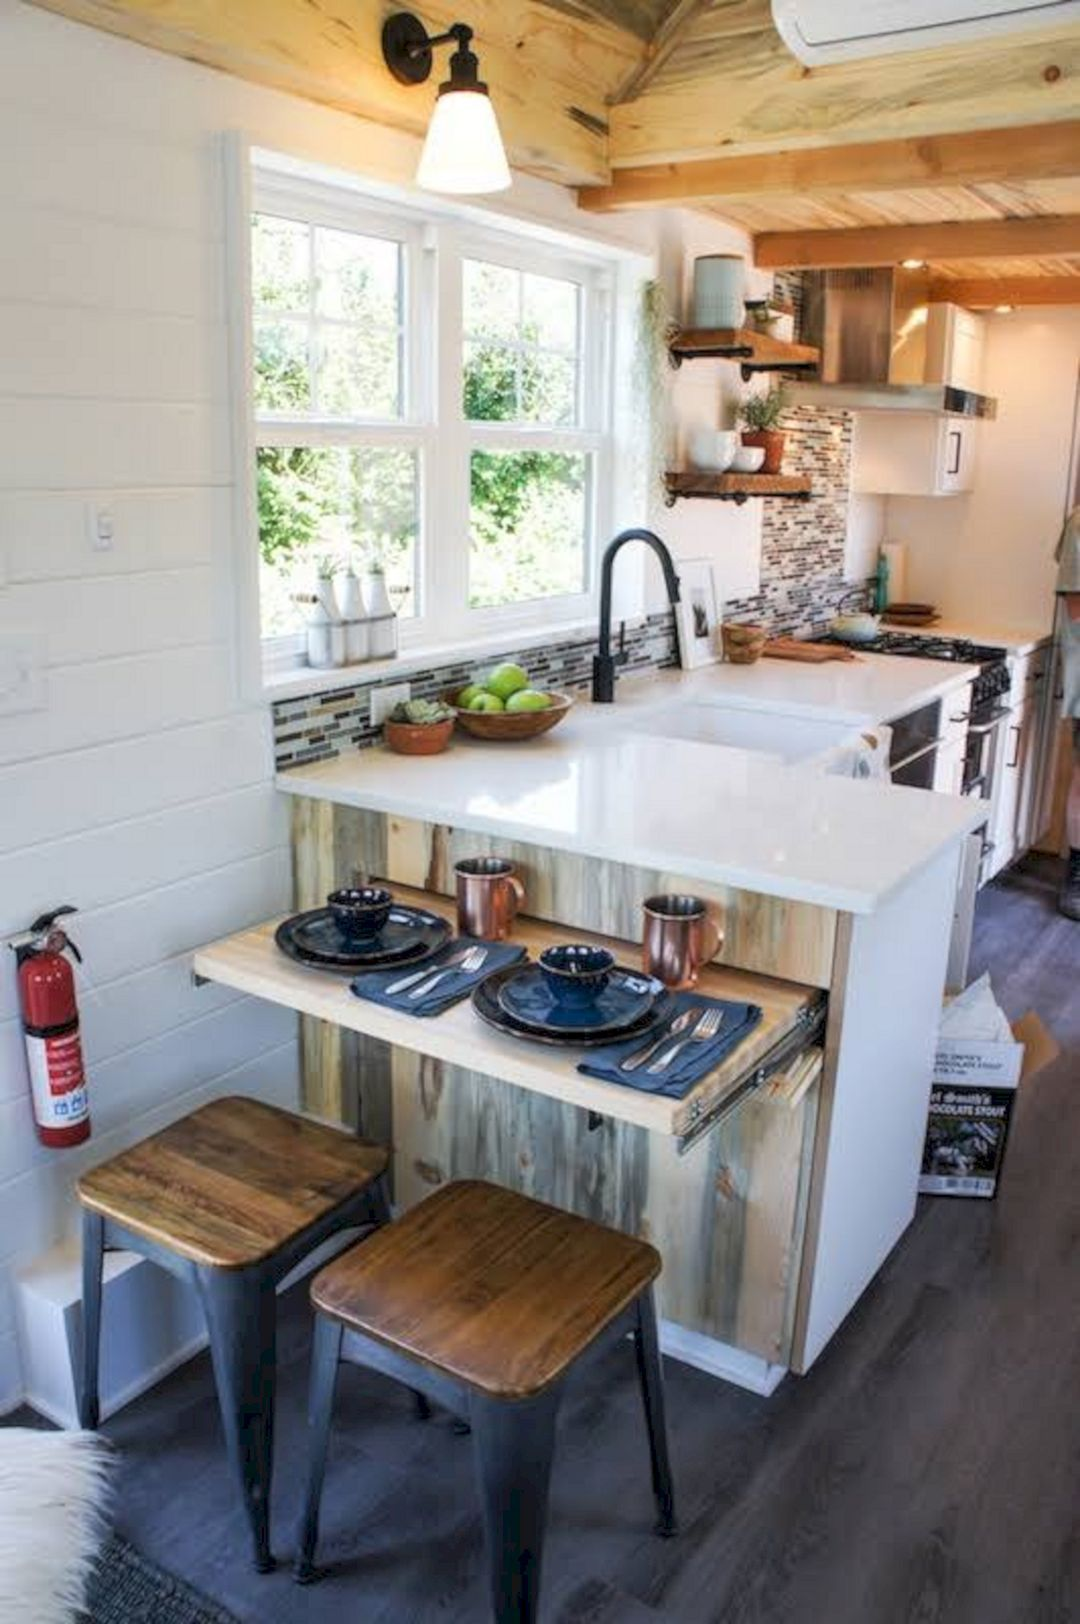 Awesome Tiny Kitchen Design For Your Beautiful Tiny House 17